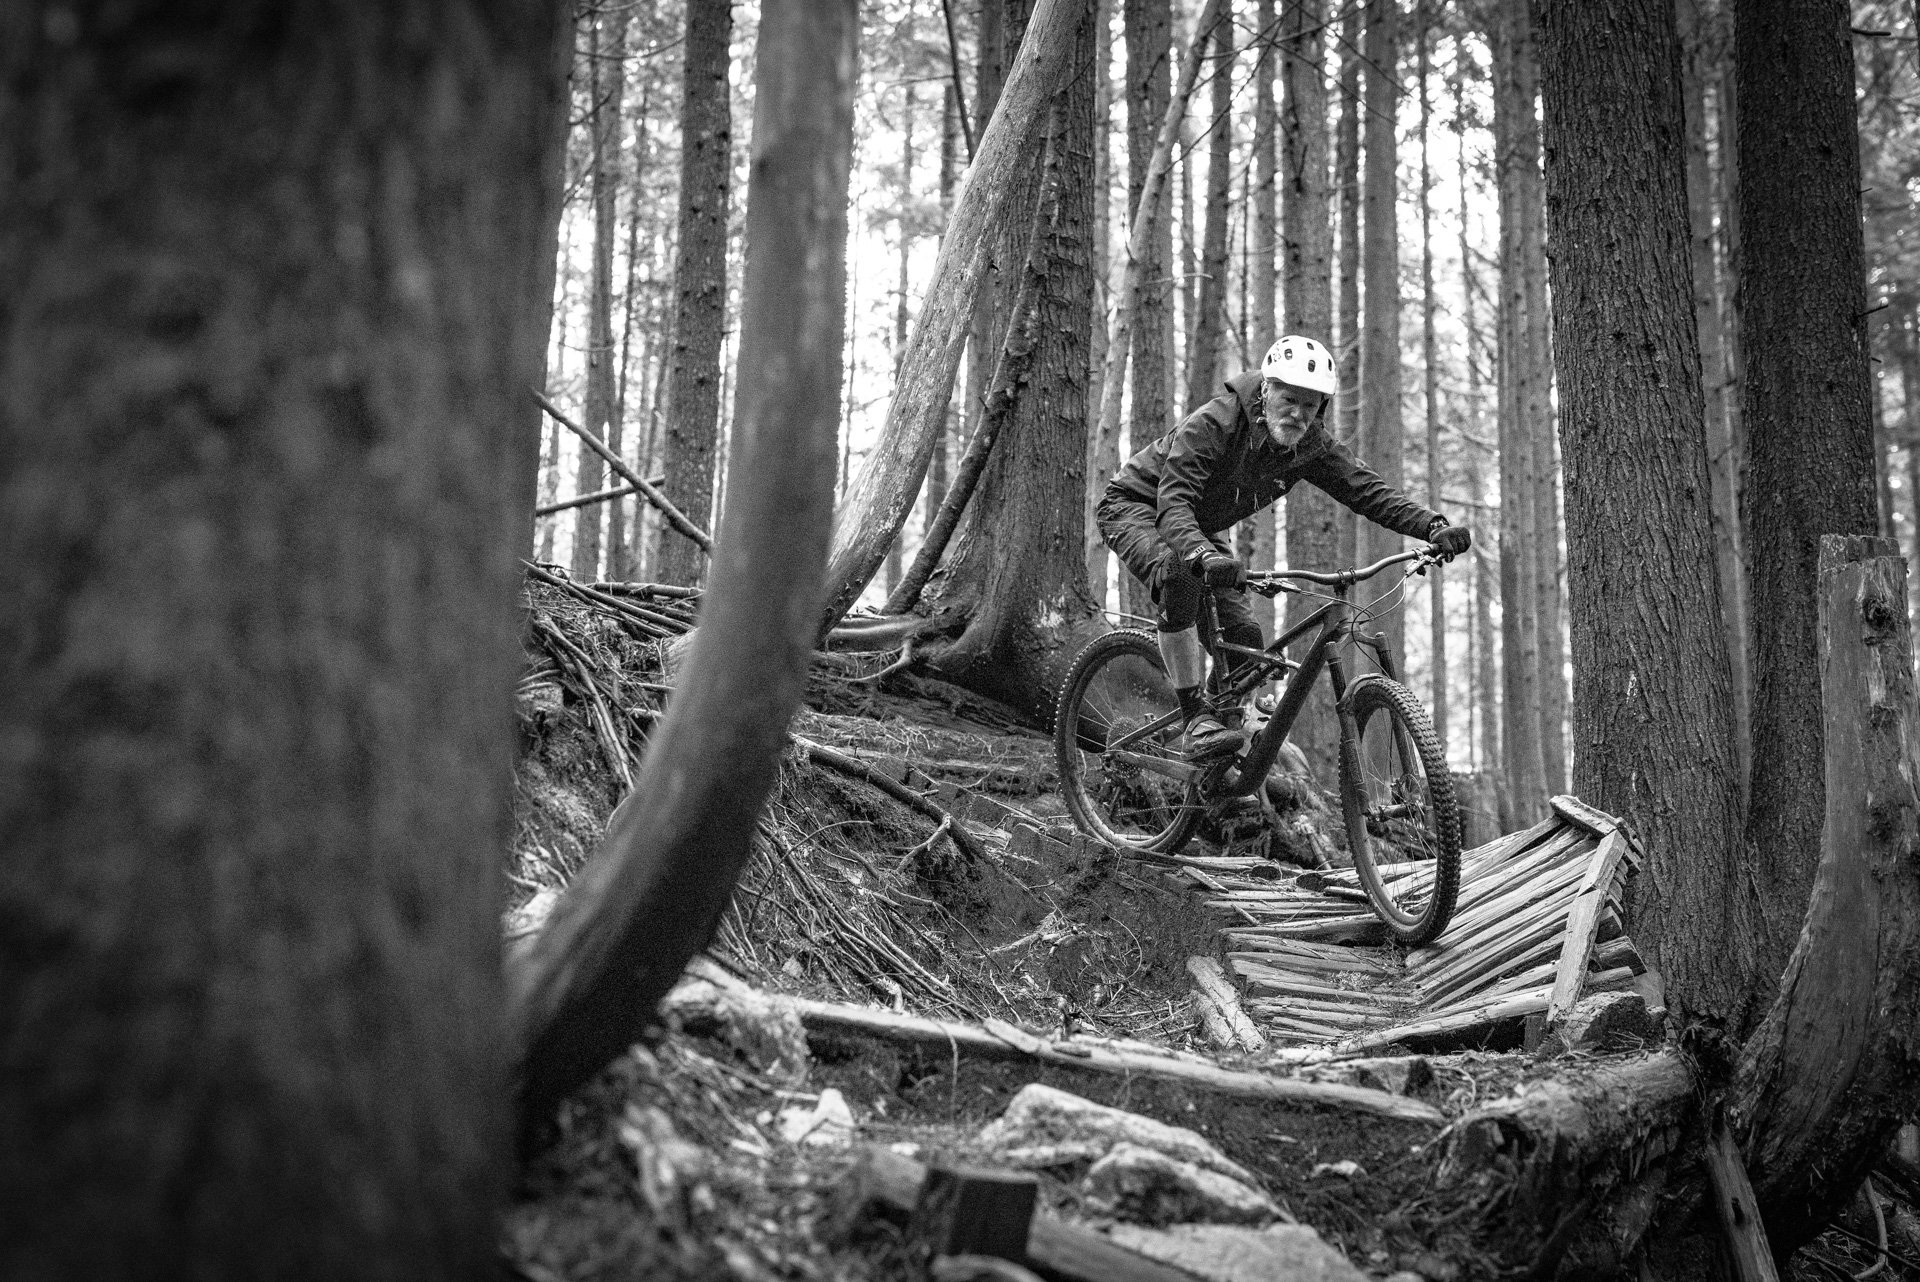 nsmb_2017_geareview_specialized_enduro29_PerrySchebel-7679.jpg